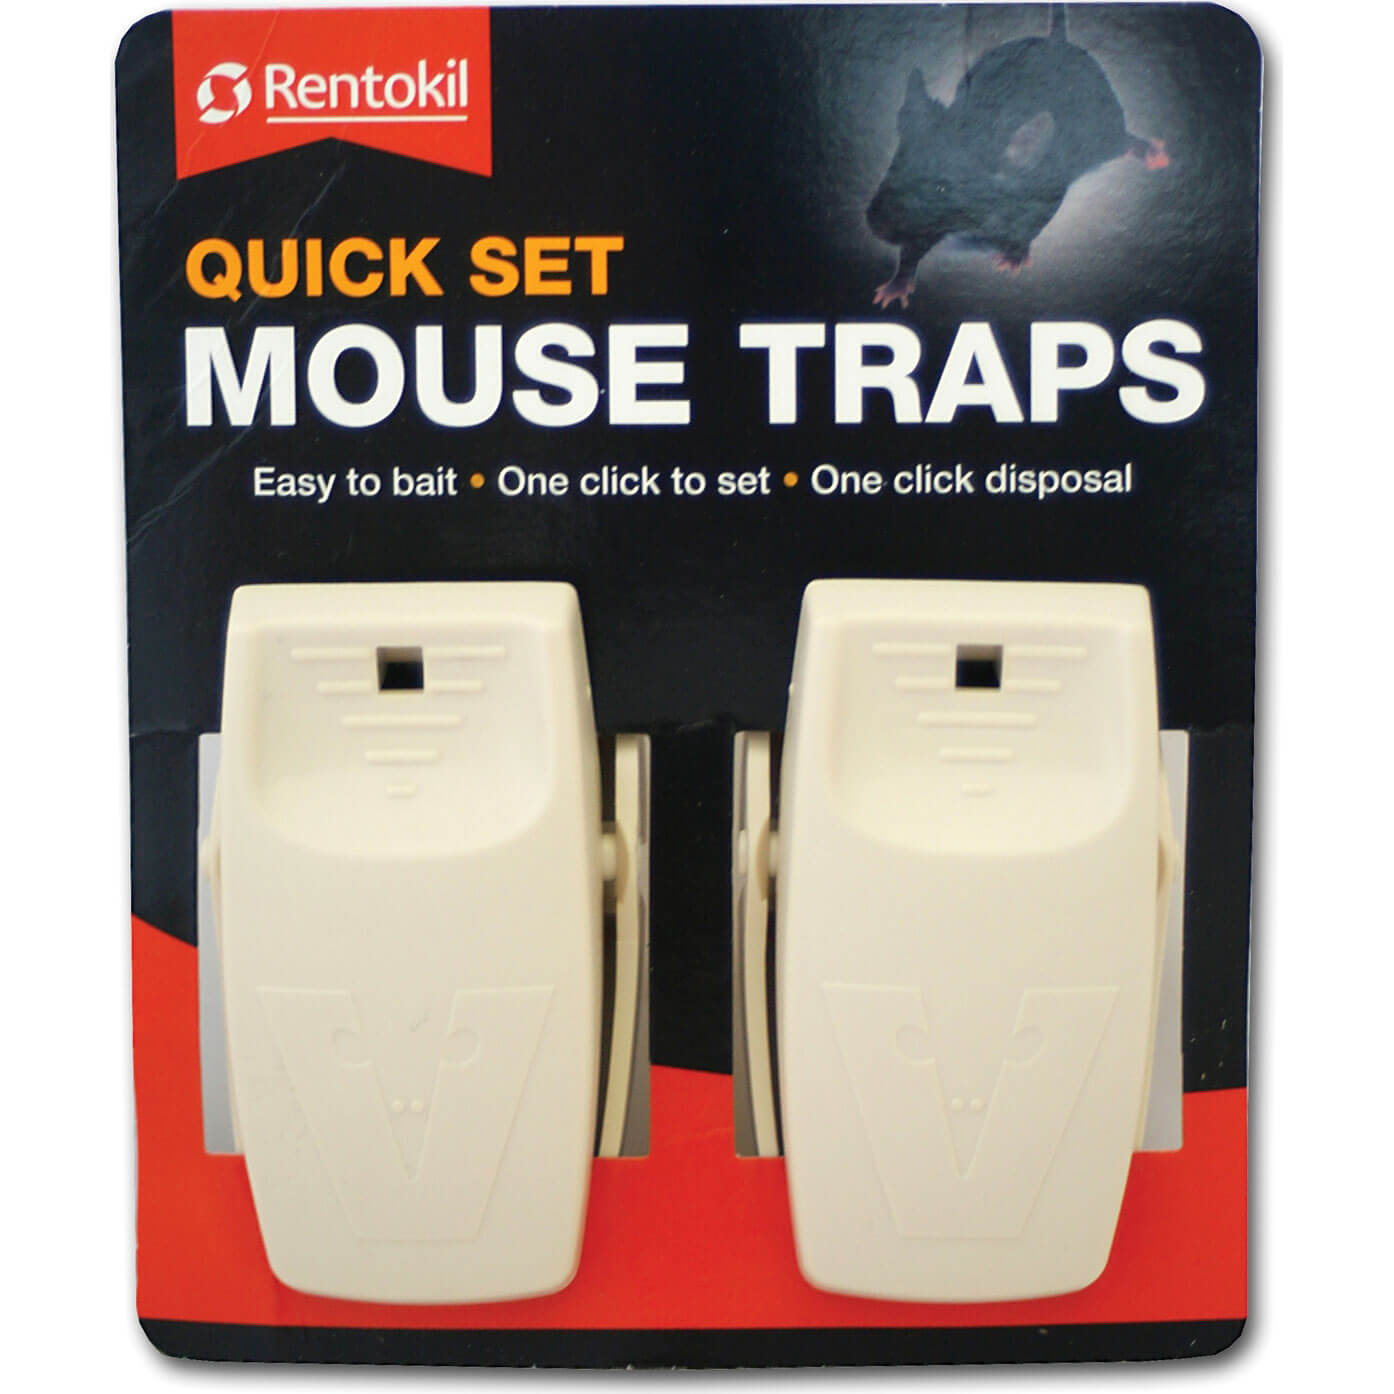 Image of Rentokil Quick Set Mouse Traps Pack of 2